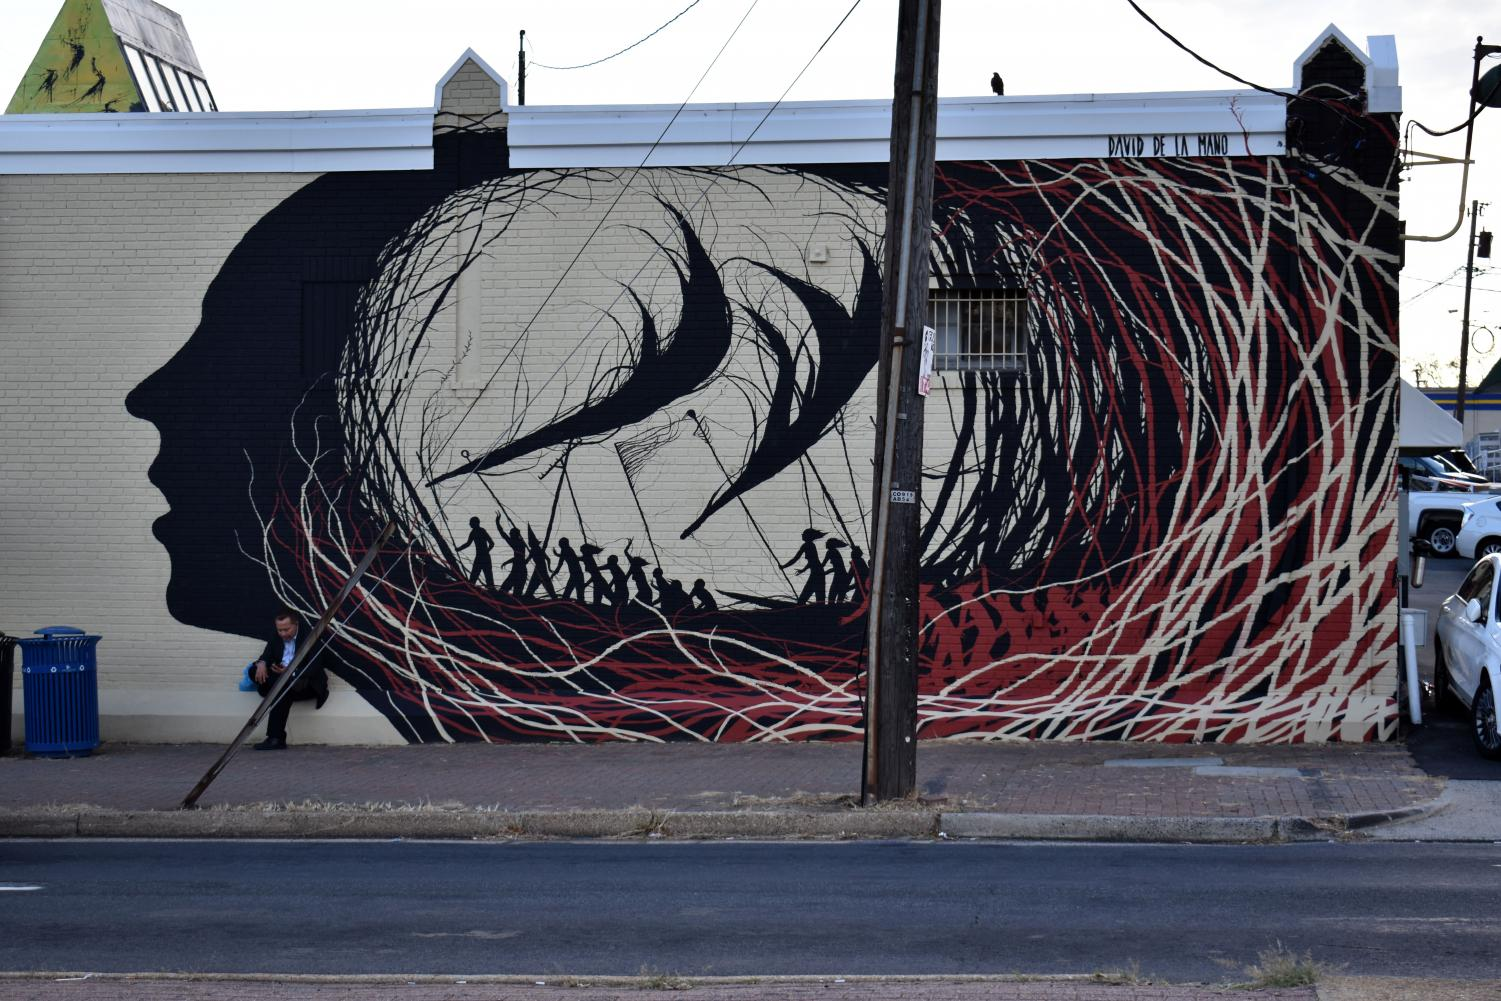 This mural can be found on Glebe Road.